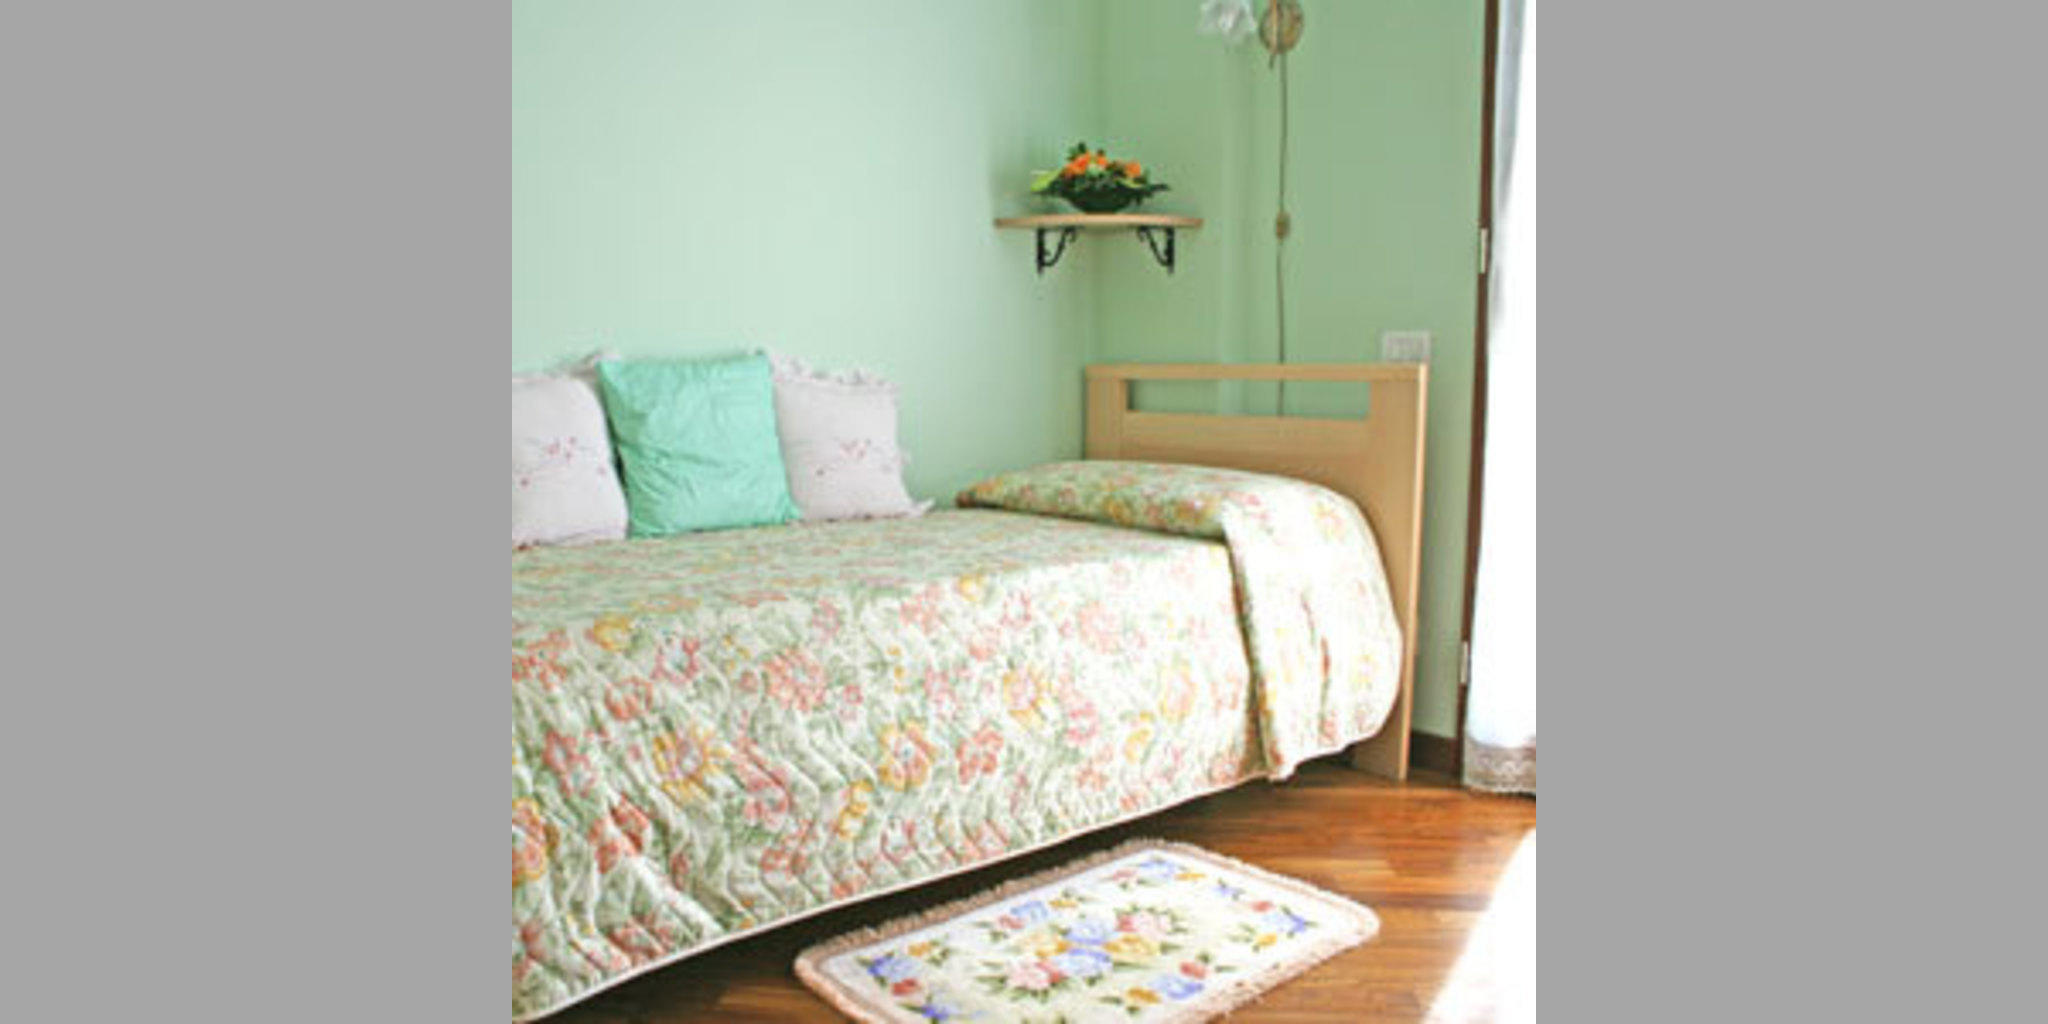 Bed & Breakfast Valmontone - Cannettacce